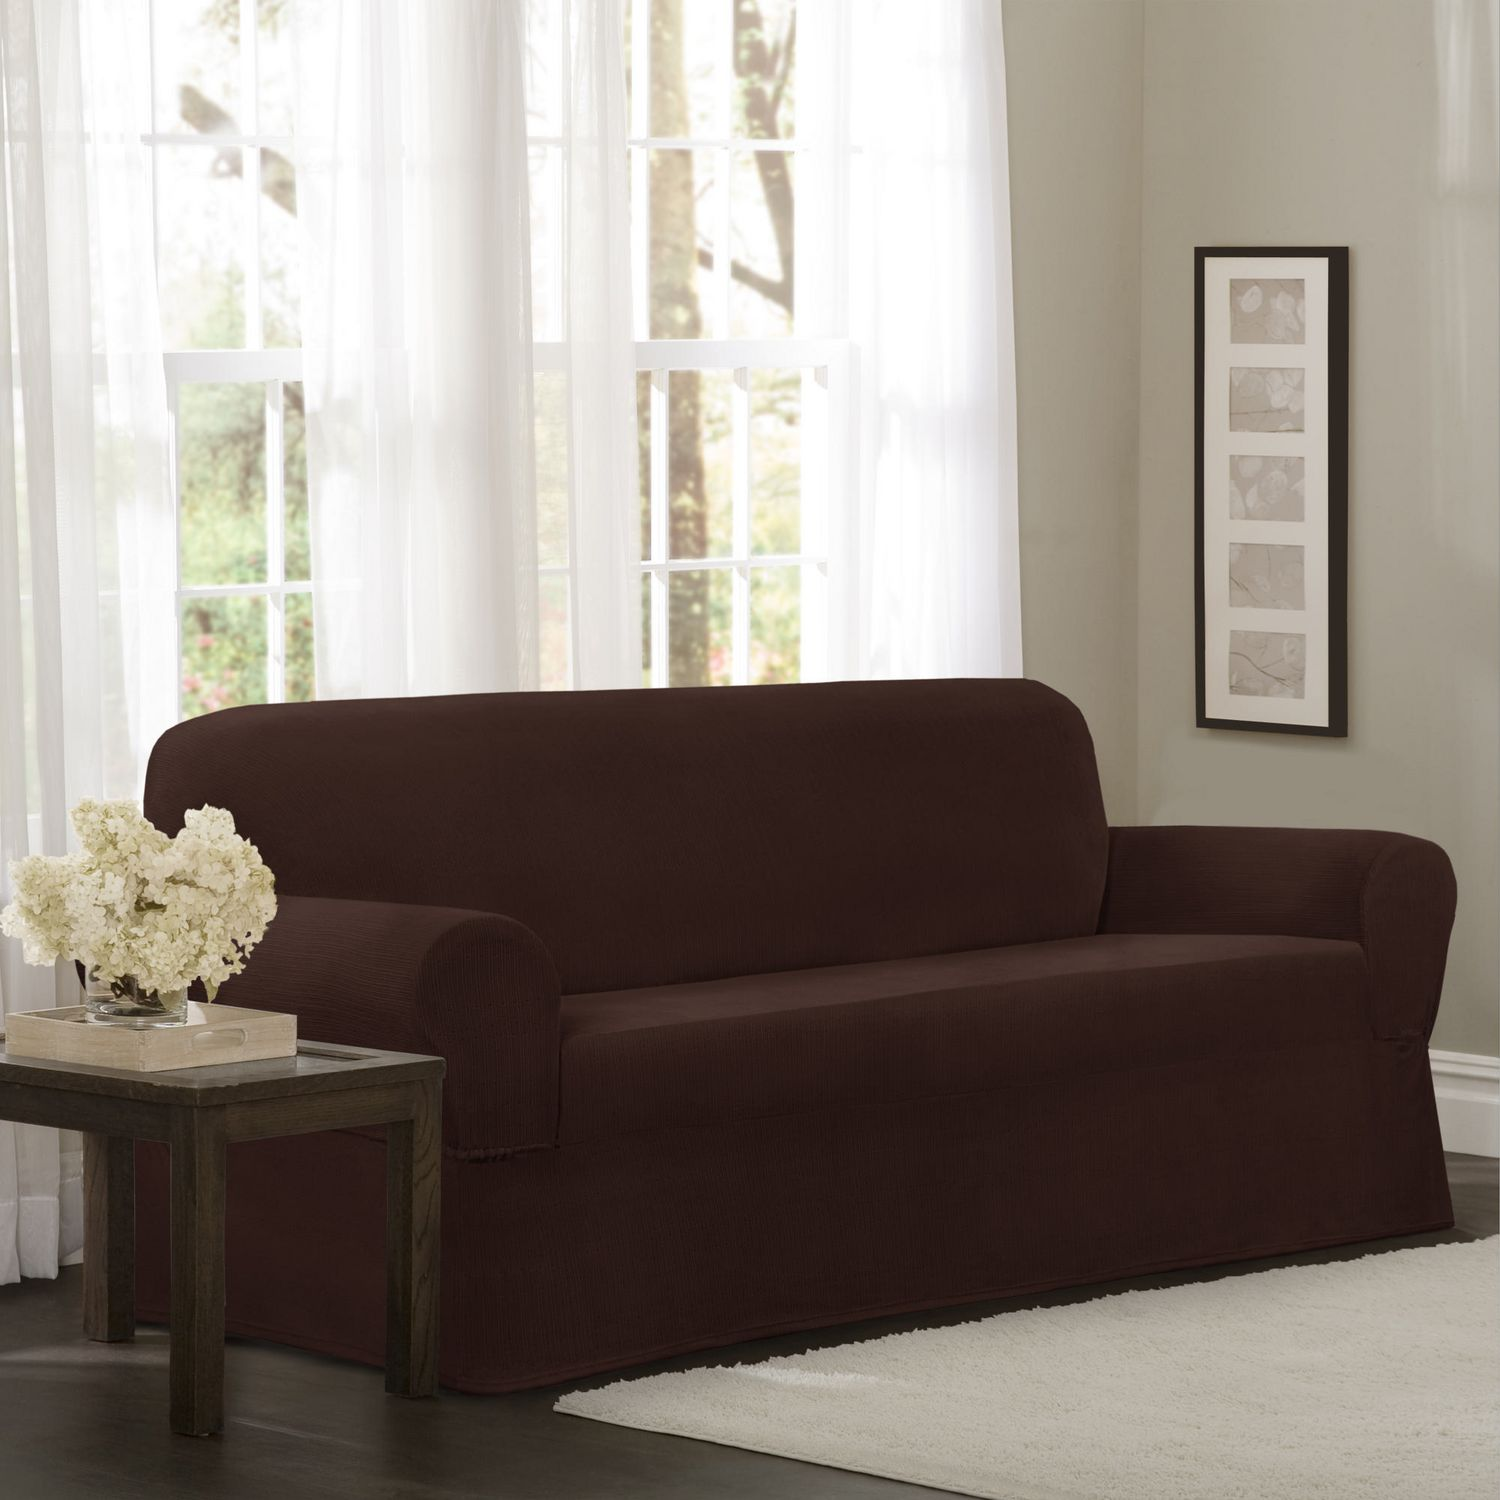 Admirable Mainstays Newman Stretch 1 Piece Sofa Slipcover Burgundy Camellatalisay Diy Chair Ideas Camellatalisaycom